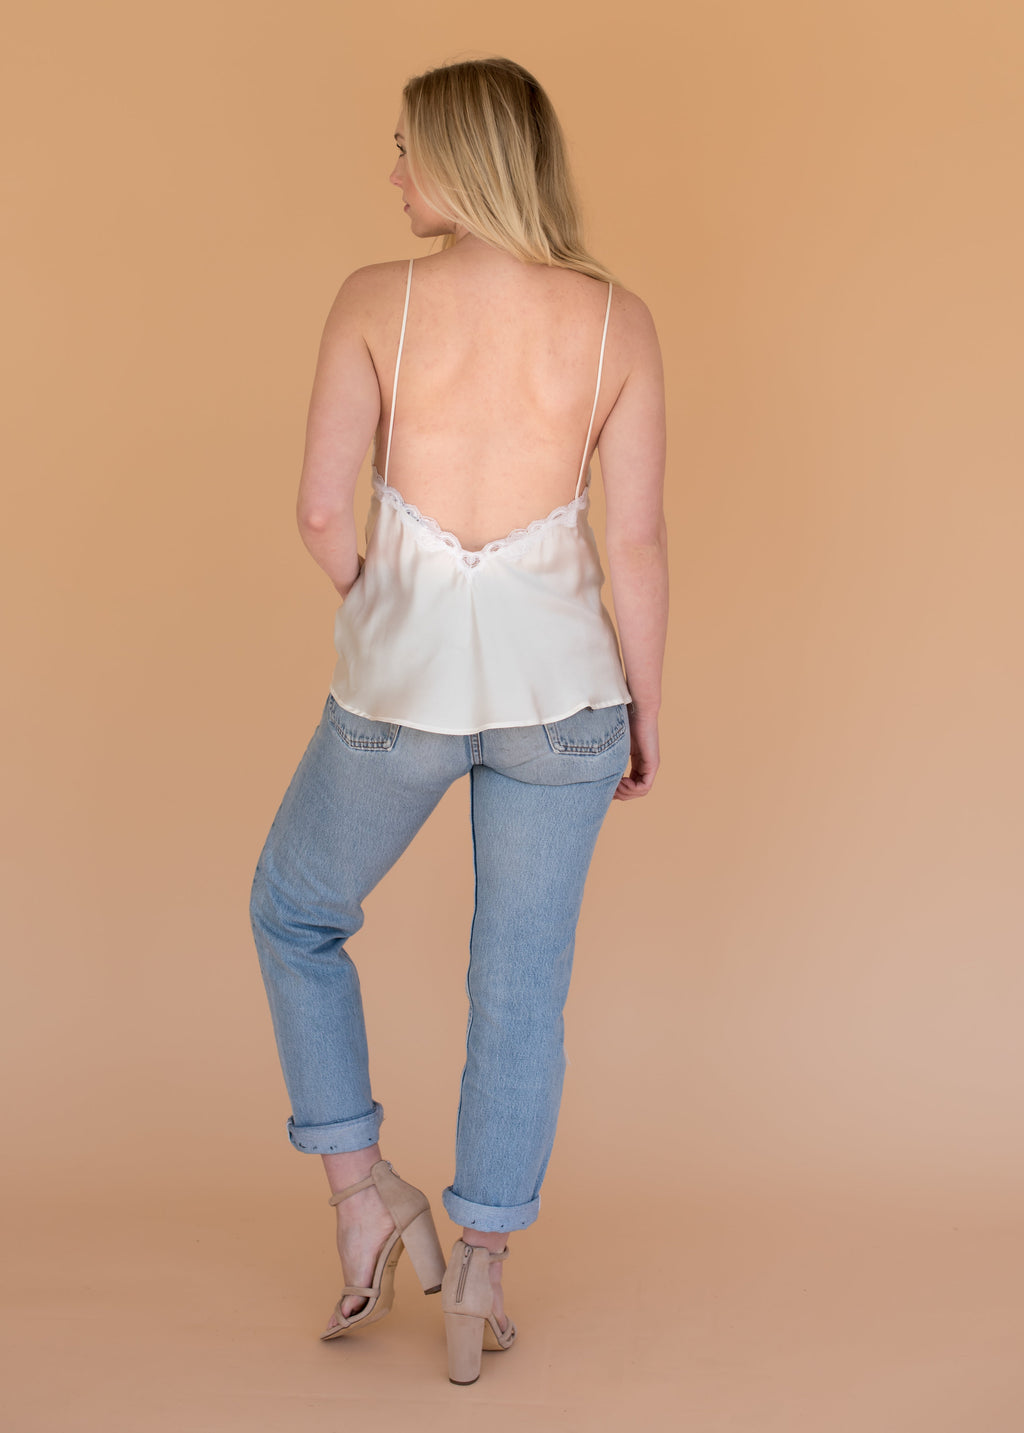 Women's Silk and Lace Top - The Monarch Slip Top